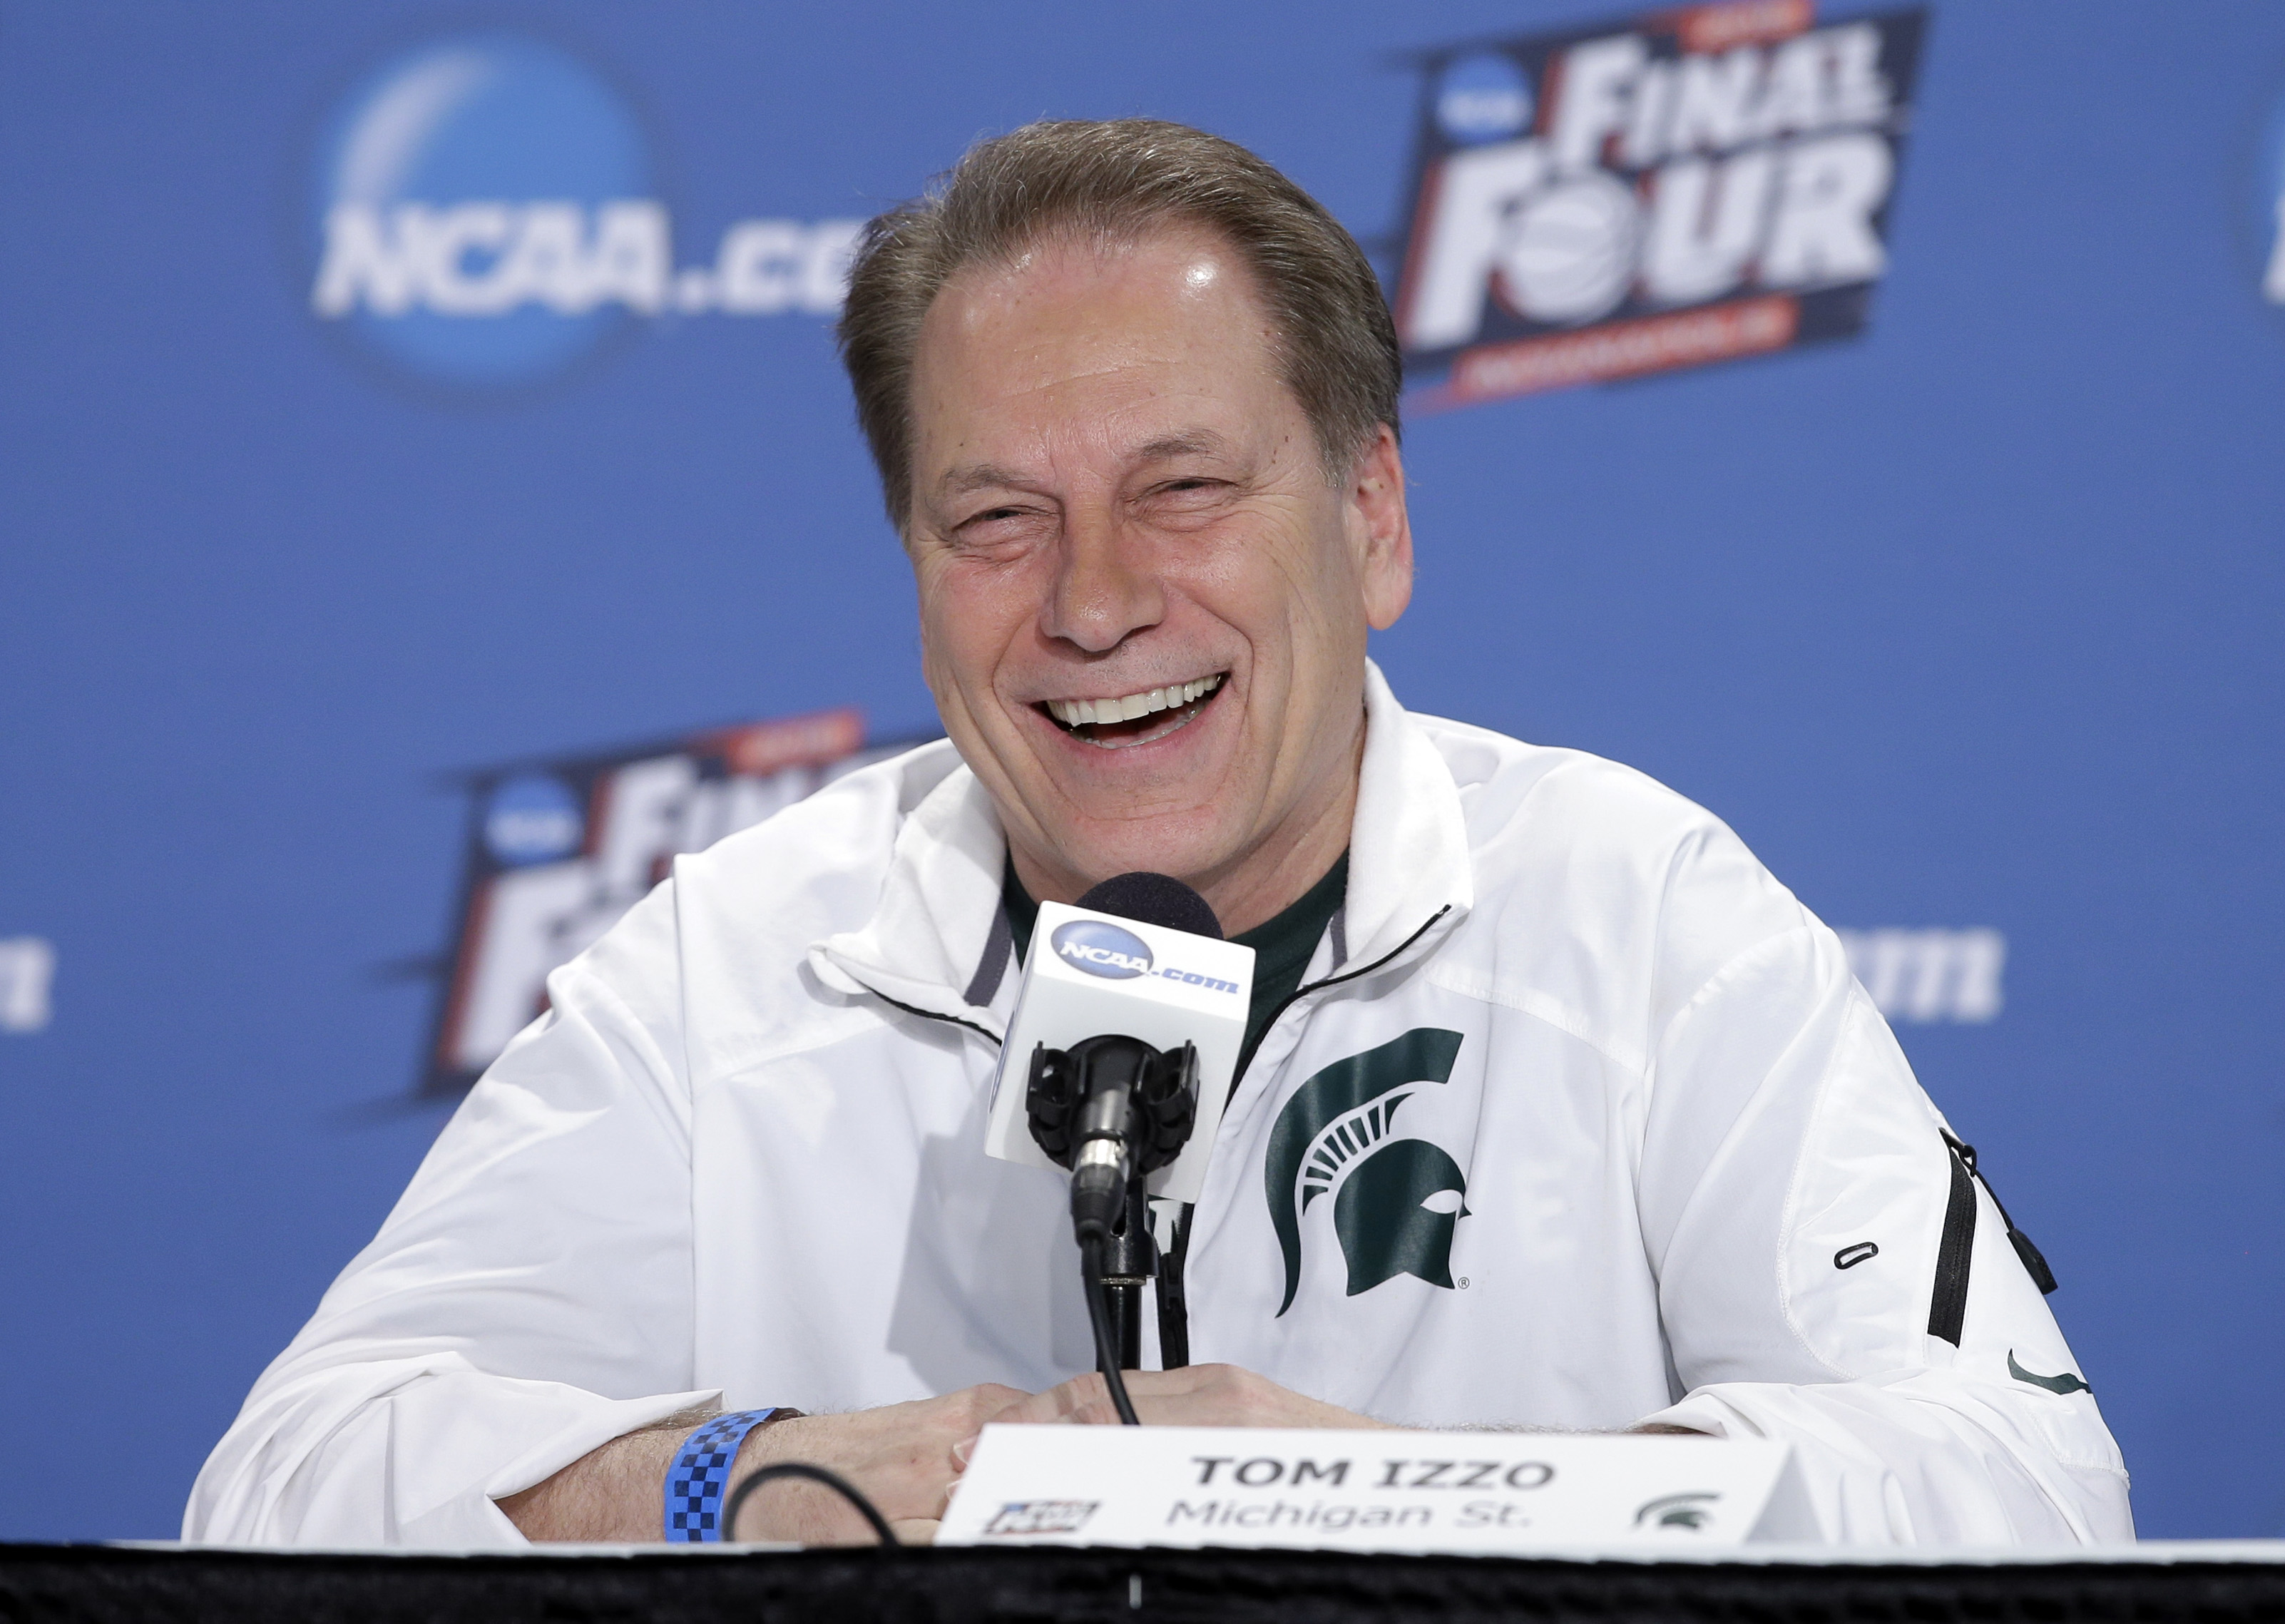 FILE - In this April 2, 2015, file photo, Michigan State head coach Tom Izzo smiles during a news conference for the NCAA Final Four tournament college basketball semifinal game, in Indianapolis. Tom Izzo has joined an exclusive club of college basketball